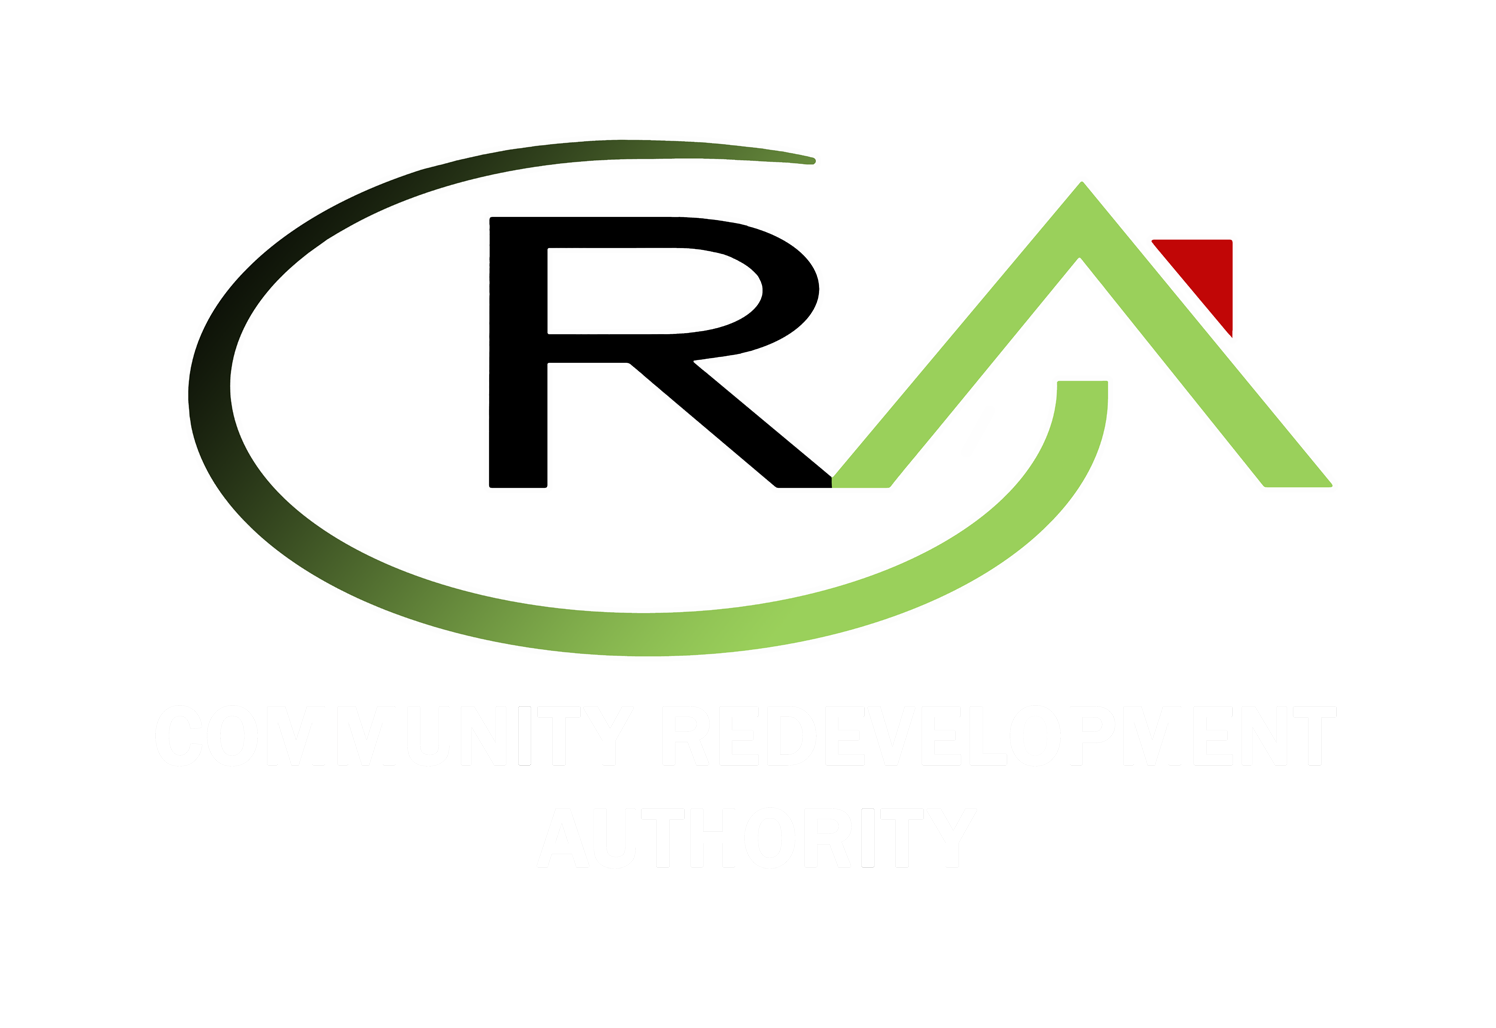 CRA LOGO FOR BLACK BACKGOUND.png